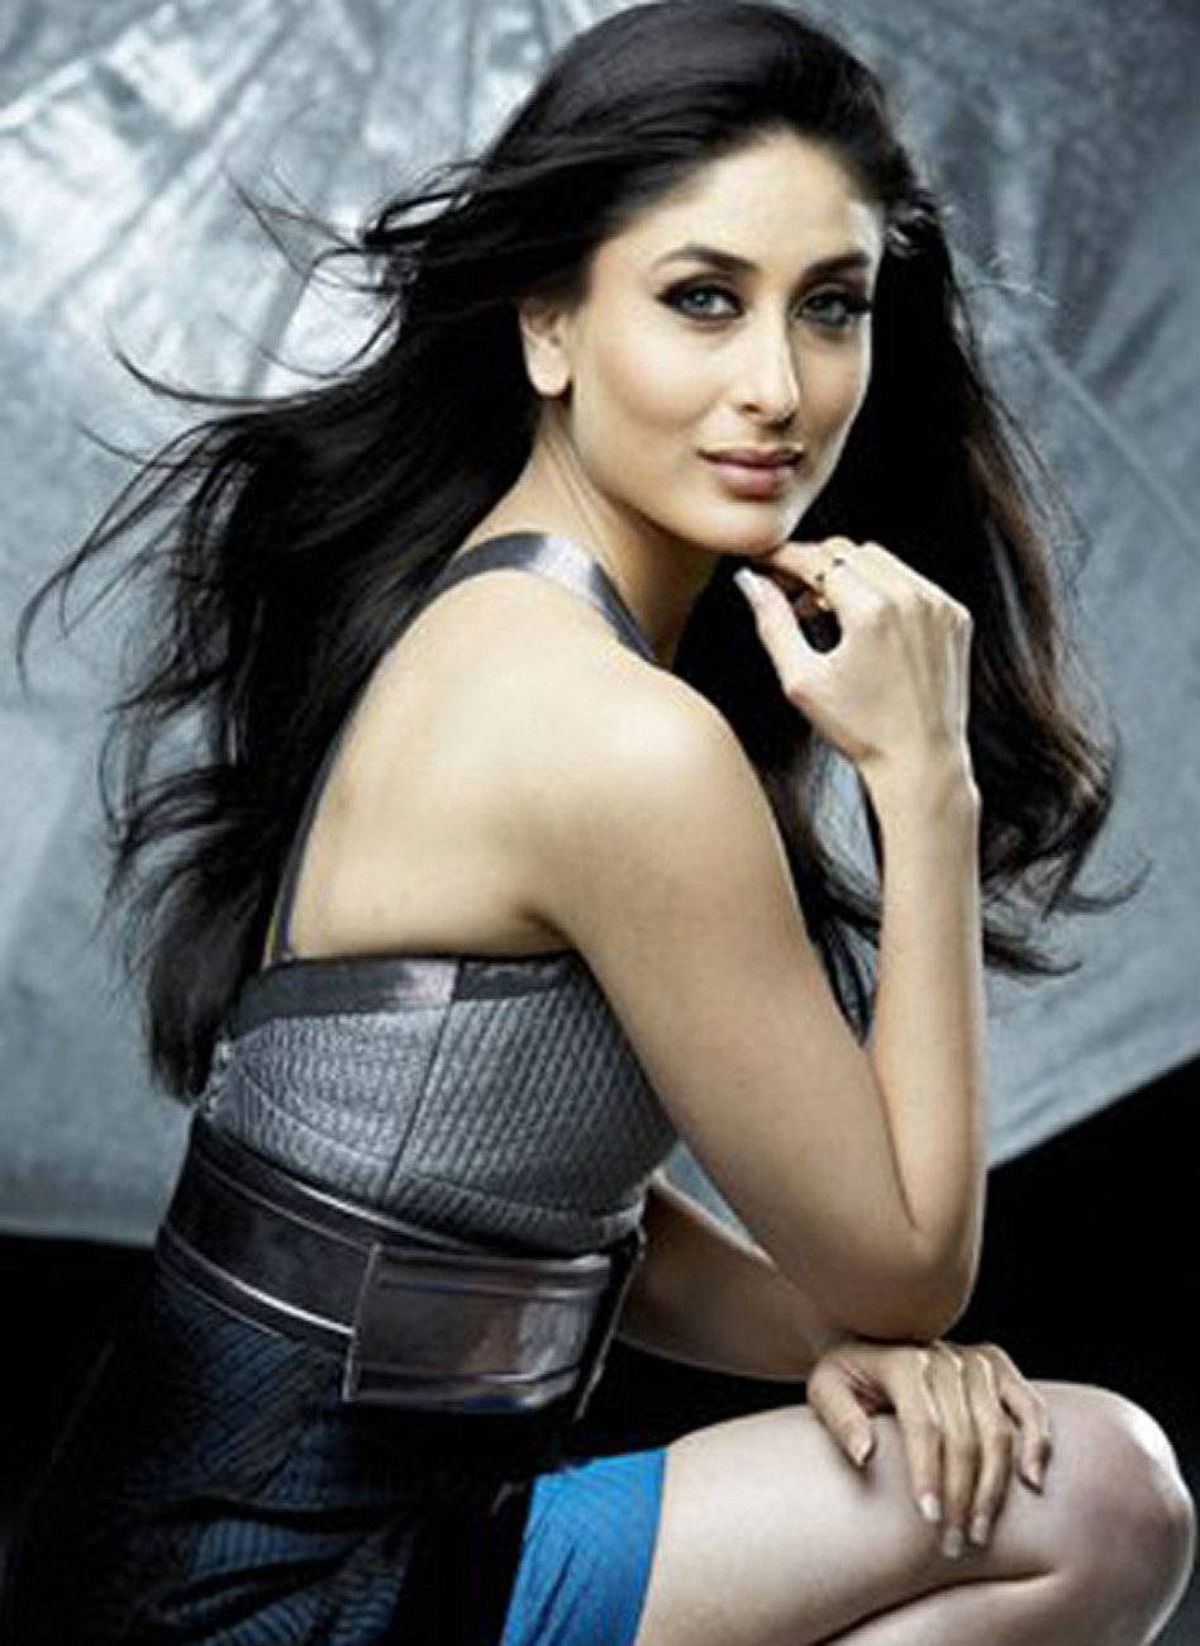 """Kareena Kapoor Born into the Kapoor film dynasty (India's version of the Barrymores), this actress has continued her family legacy in roles ranging from the superficially rebellious """"Poo"""" in Kabi Khushi Kabhie Gham to a prostitute caught up in love in Chameli to an independent-minded medical student in 3 Idiots."""